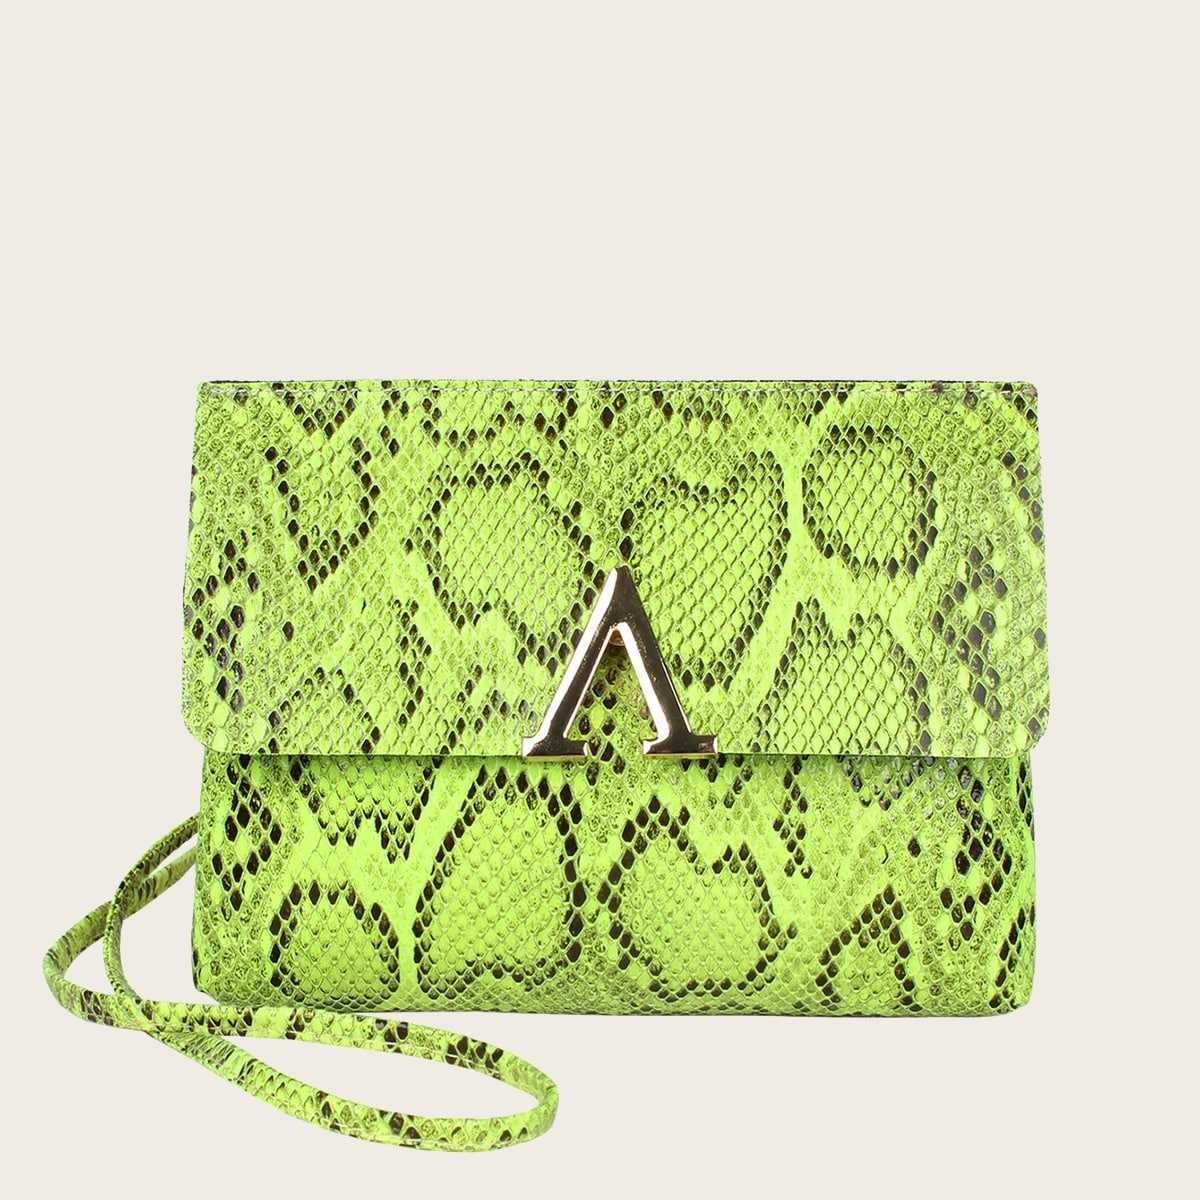 Neon Lime V Cut Snakeskin Print Bag in Green Neon by ROMWE on GOOFASH